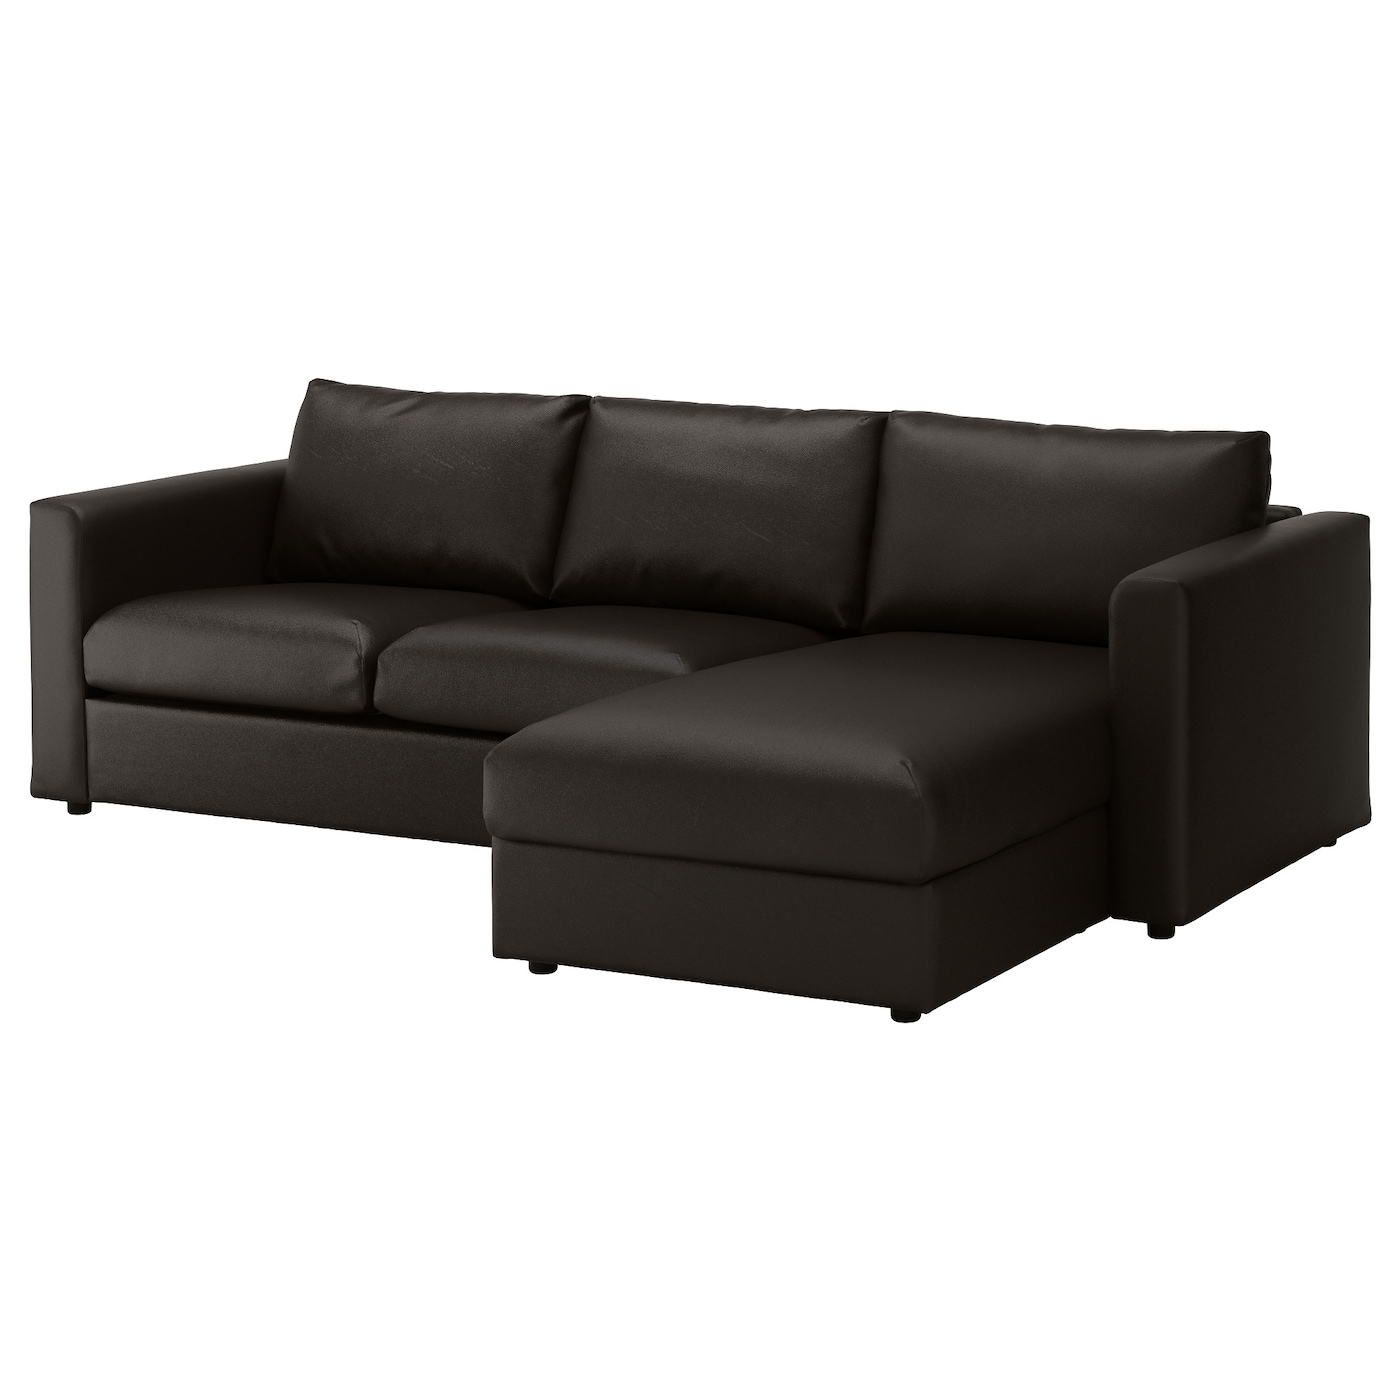 Ikea White Leather Couch Sofas: VIMLE 3-seat Sofa With Chaise Longue/farsta Black